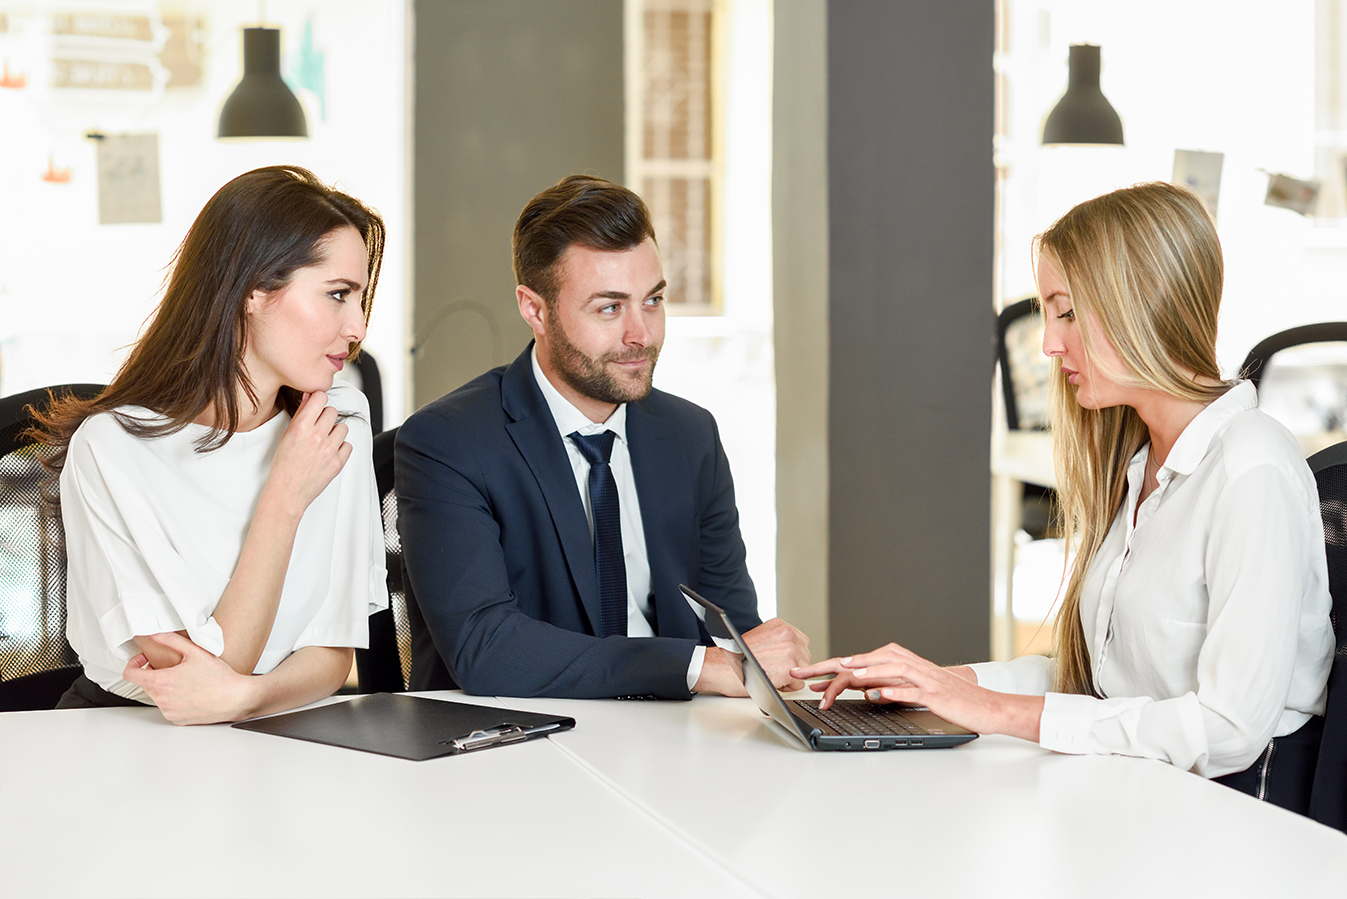 Blonde woman insurance agent or investment adviser explaining with laptop computer to a smiling young couple.